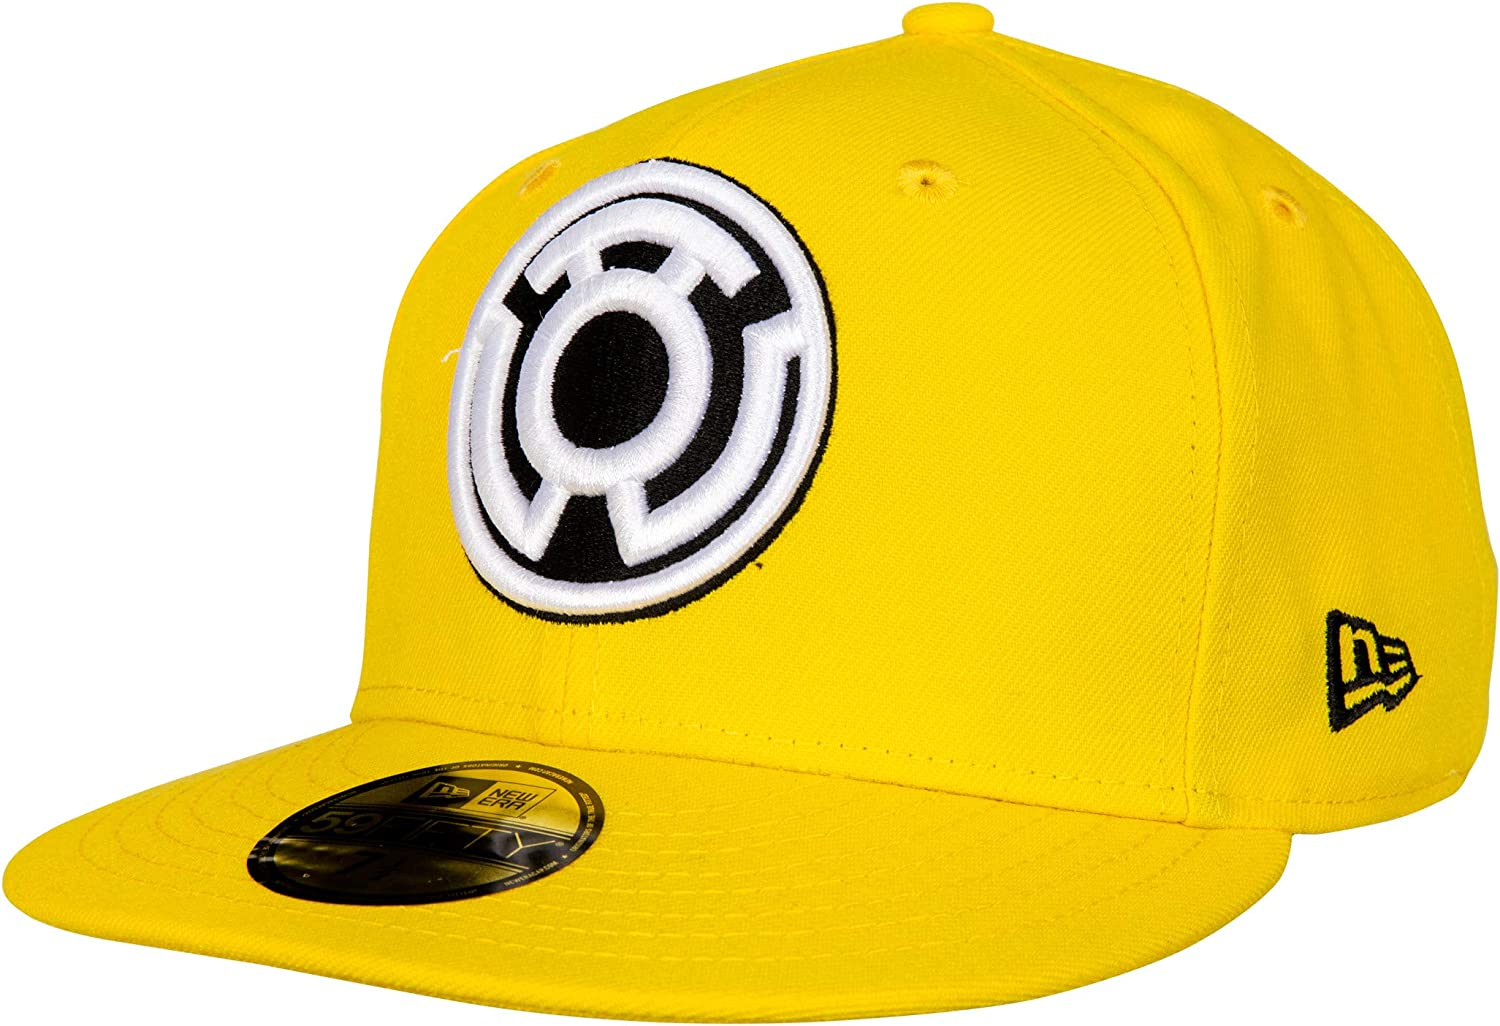 New Era Yellow Lantern Sinestro Corp Color Block 59Fifty Fitted Hat